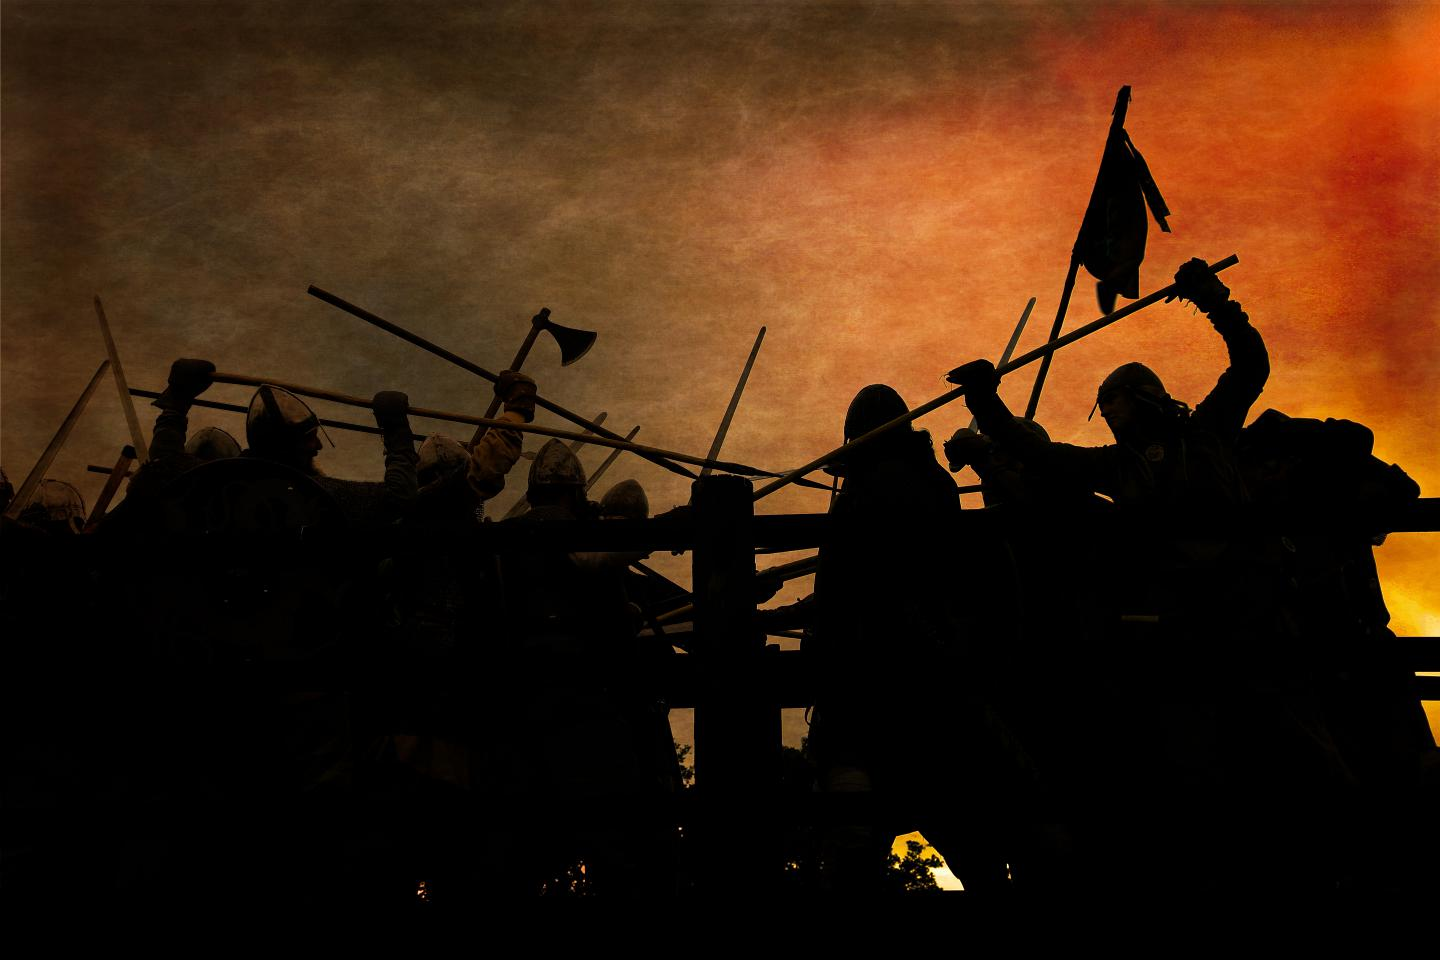 Warriors fighting, silhouetted against orange clouds